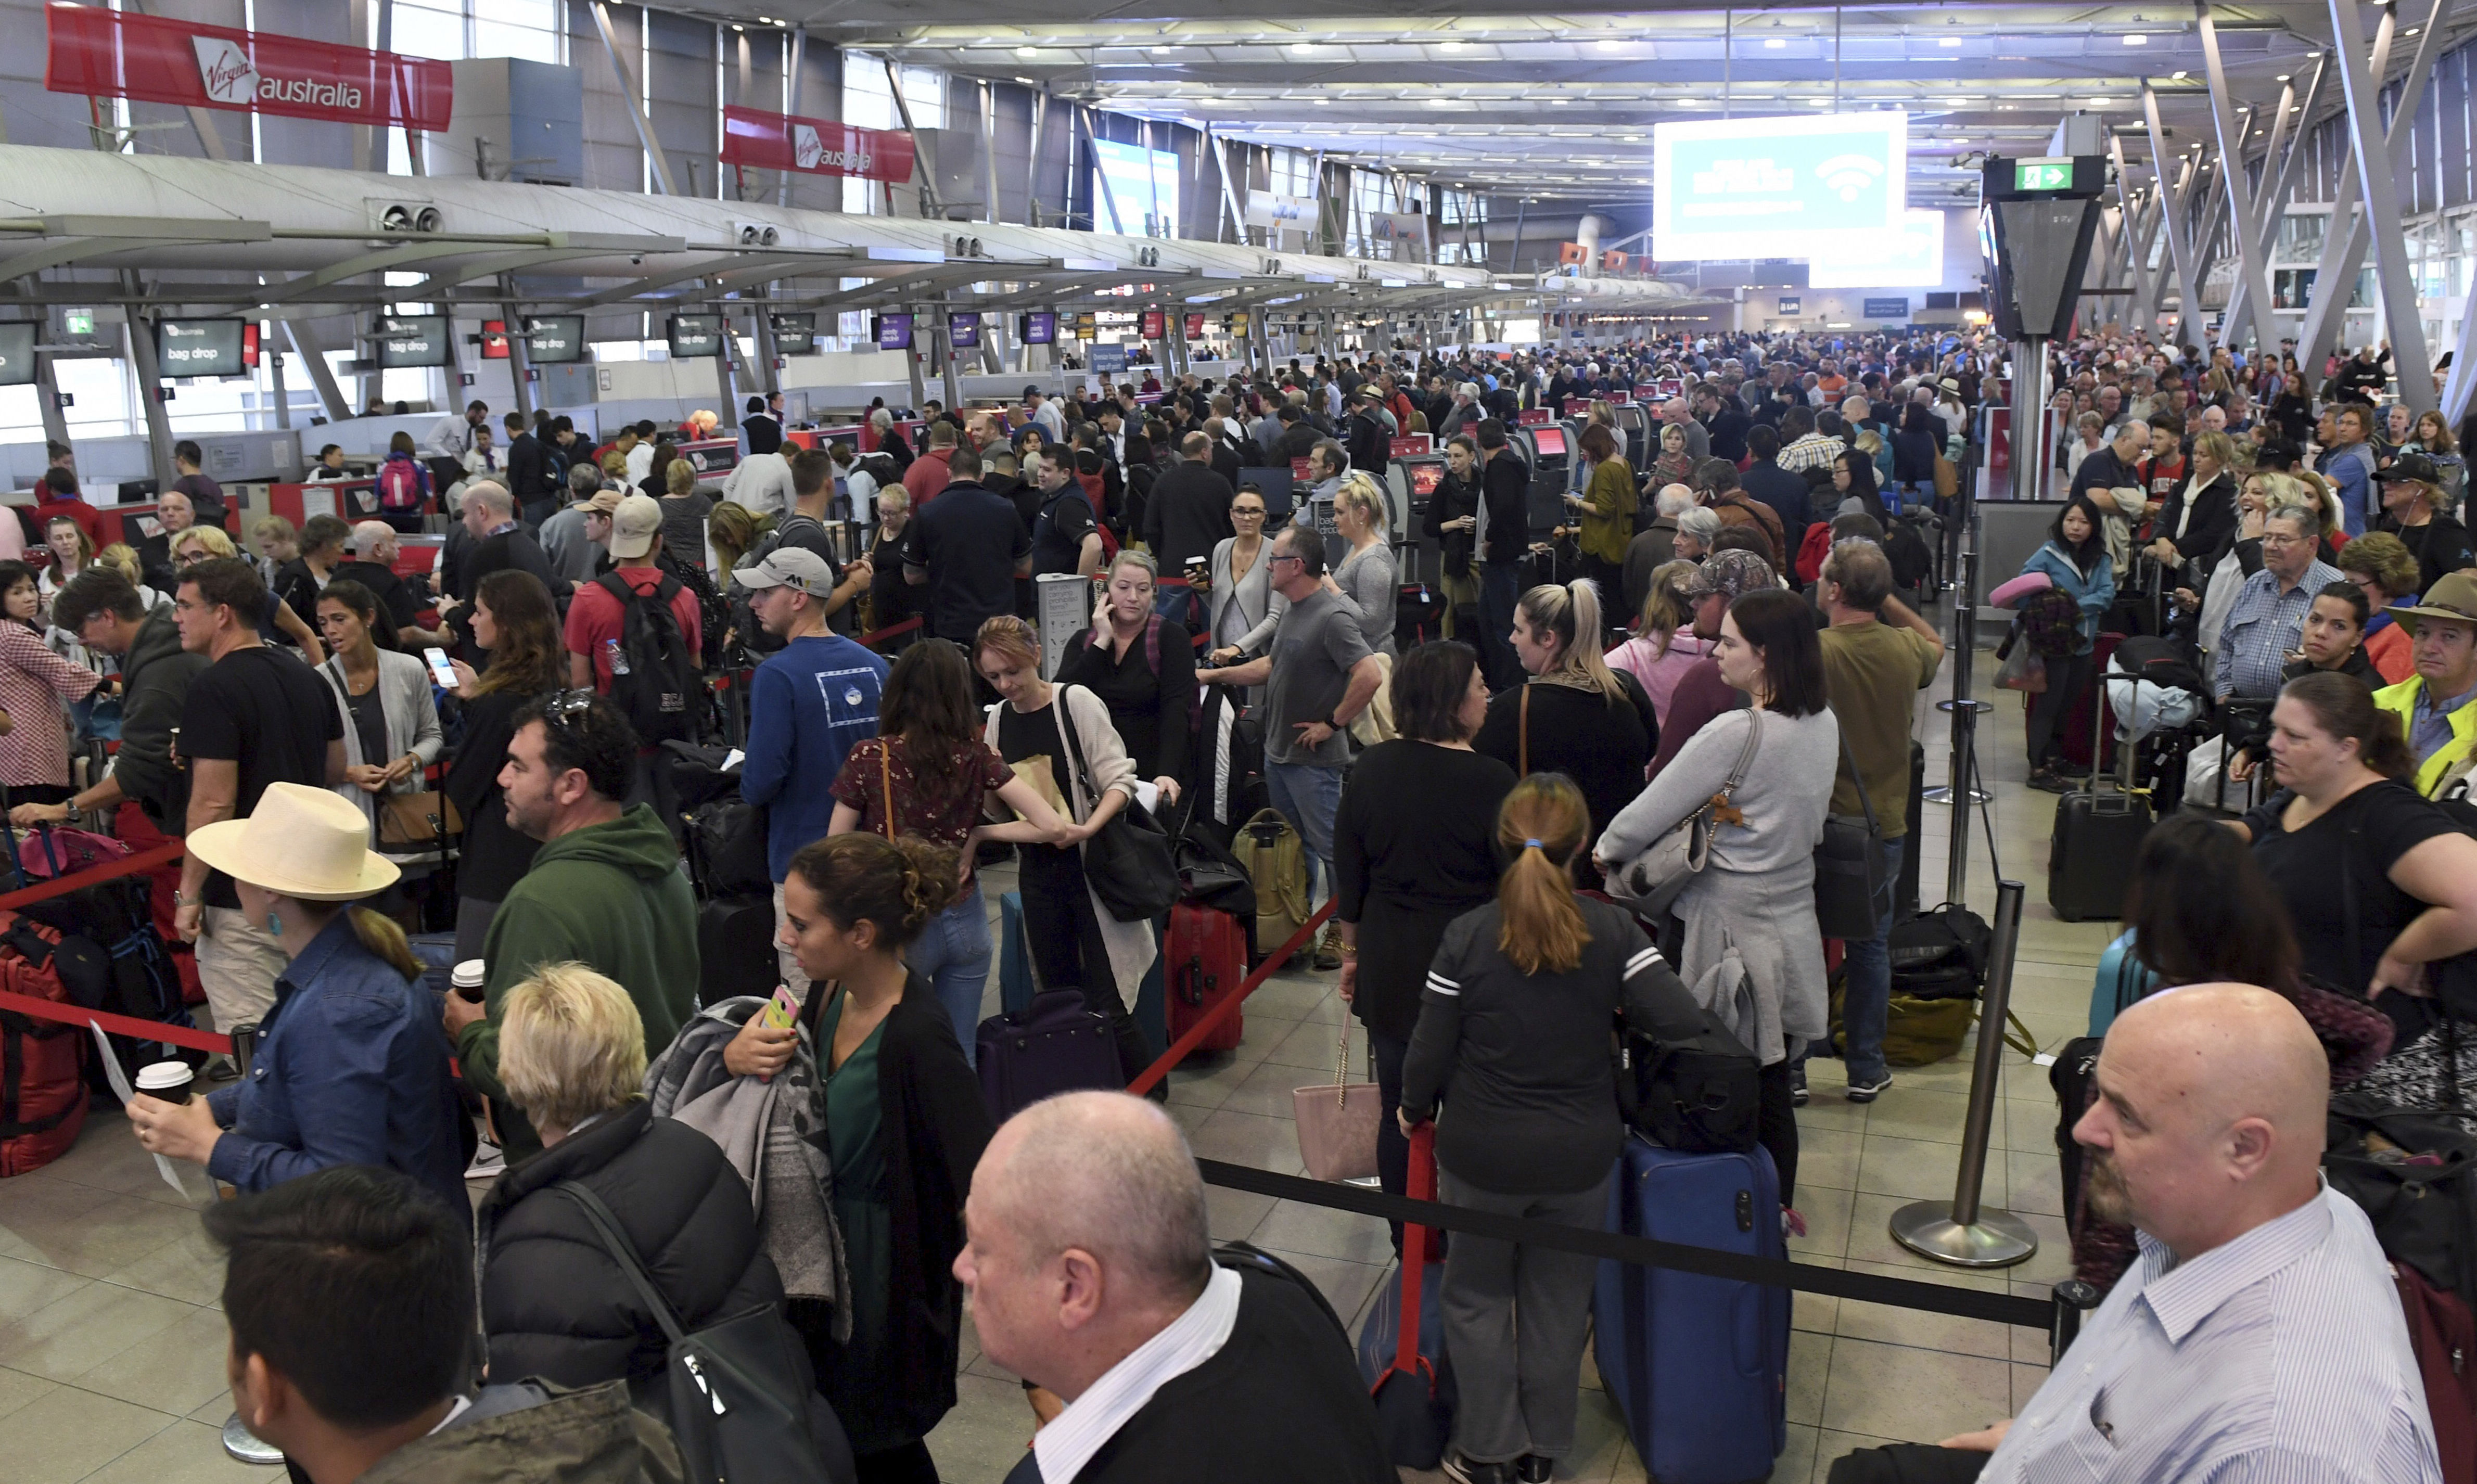 People crowd a terminal at Sydney's domestic airport as passengers are subjected to increased security, in Sydney, Australia, Monday, July 31, 2017. Security remains heightened in airports around Australia with more intense screening of luggage after law enforcement officials said they had thwarted a plan to bring down an airliner.